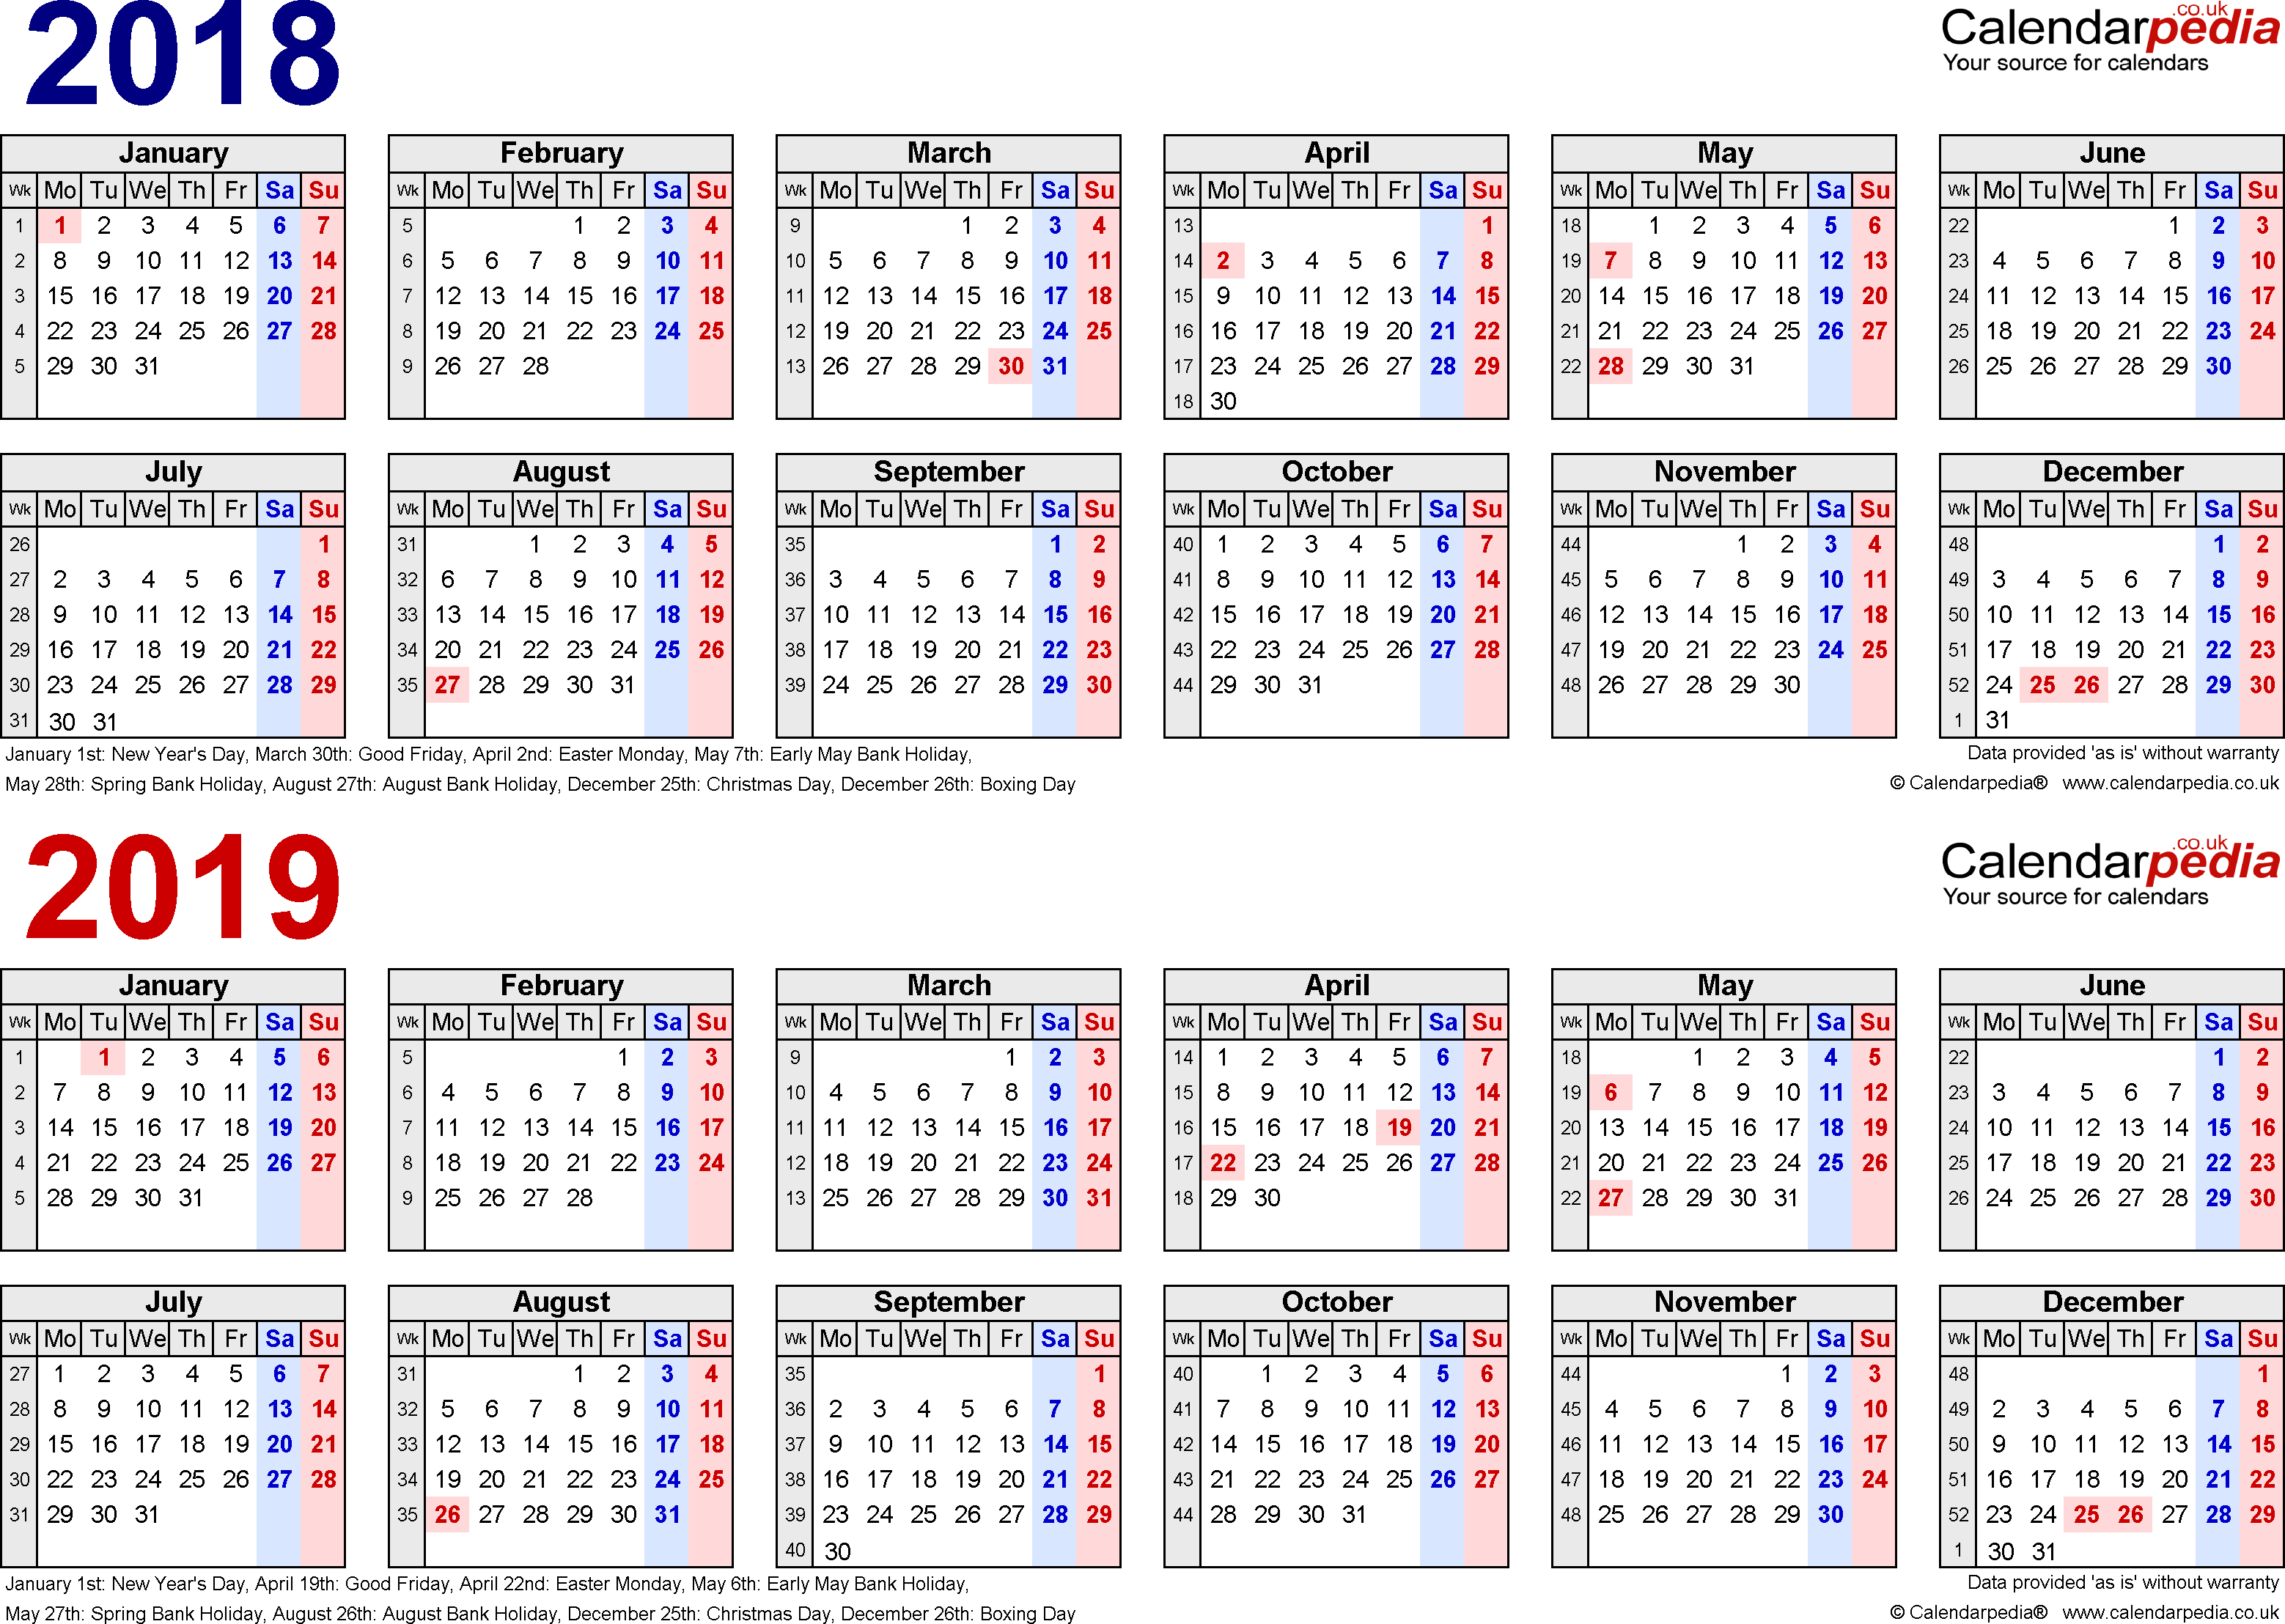 Download Template 1: Excel template for two year calendar 2018/2019 in blue/red (landscape orientation, 1 page, A4)